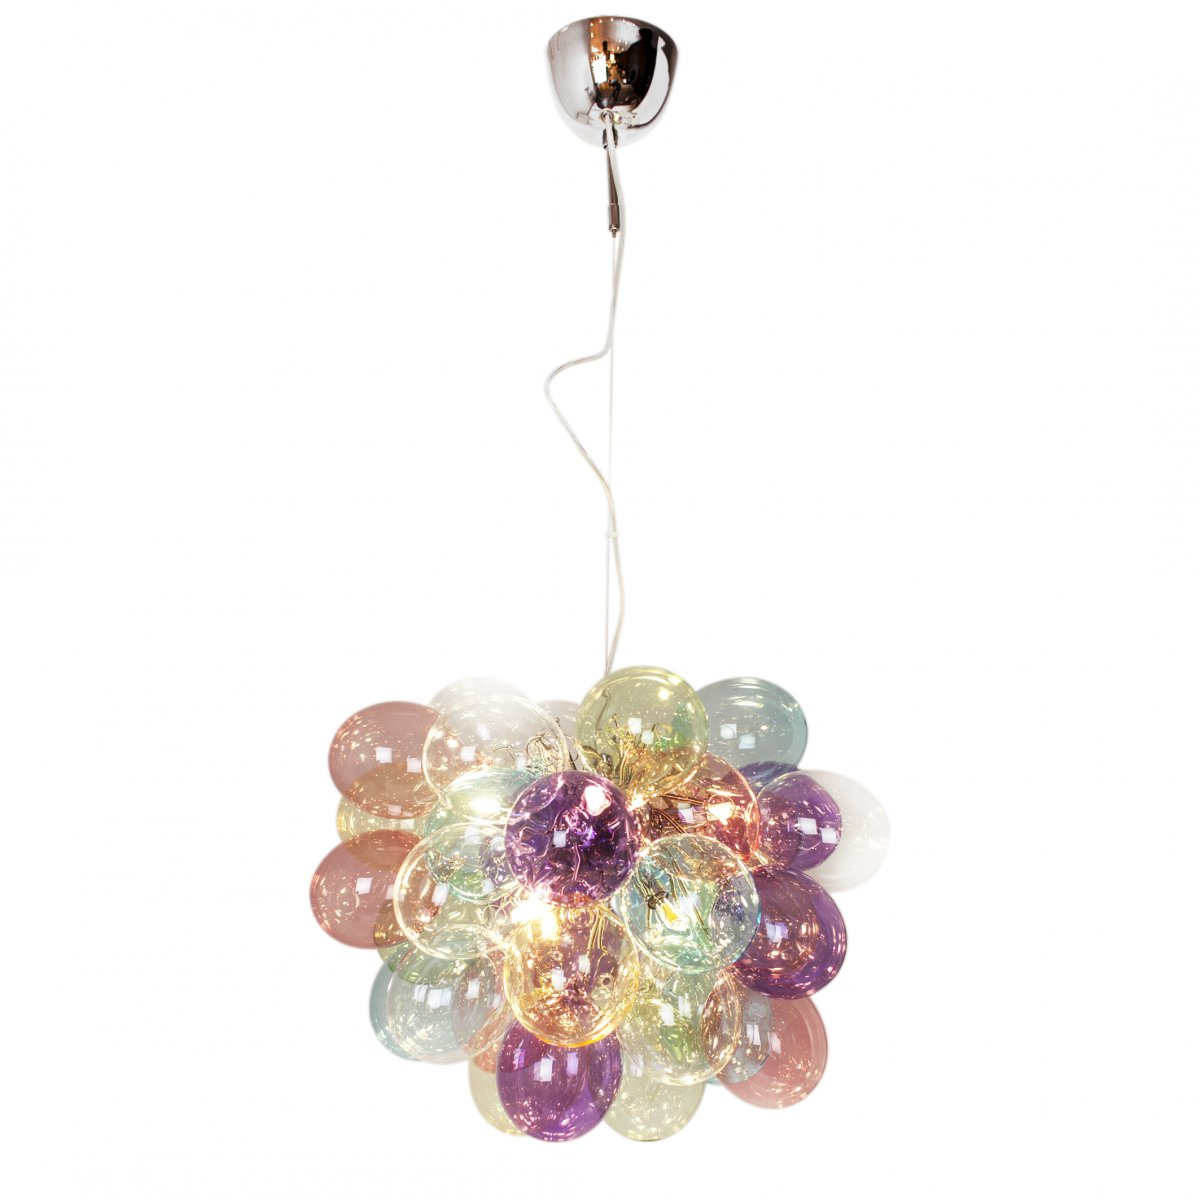 By Rydéns 4200440 7000 Pendelleuchte Gross 8 flammig 50 cm multicolor